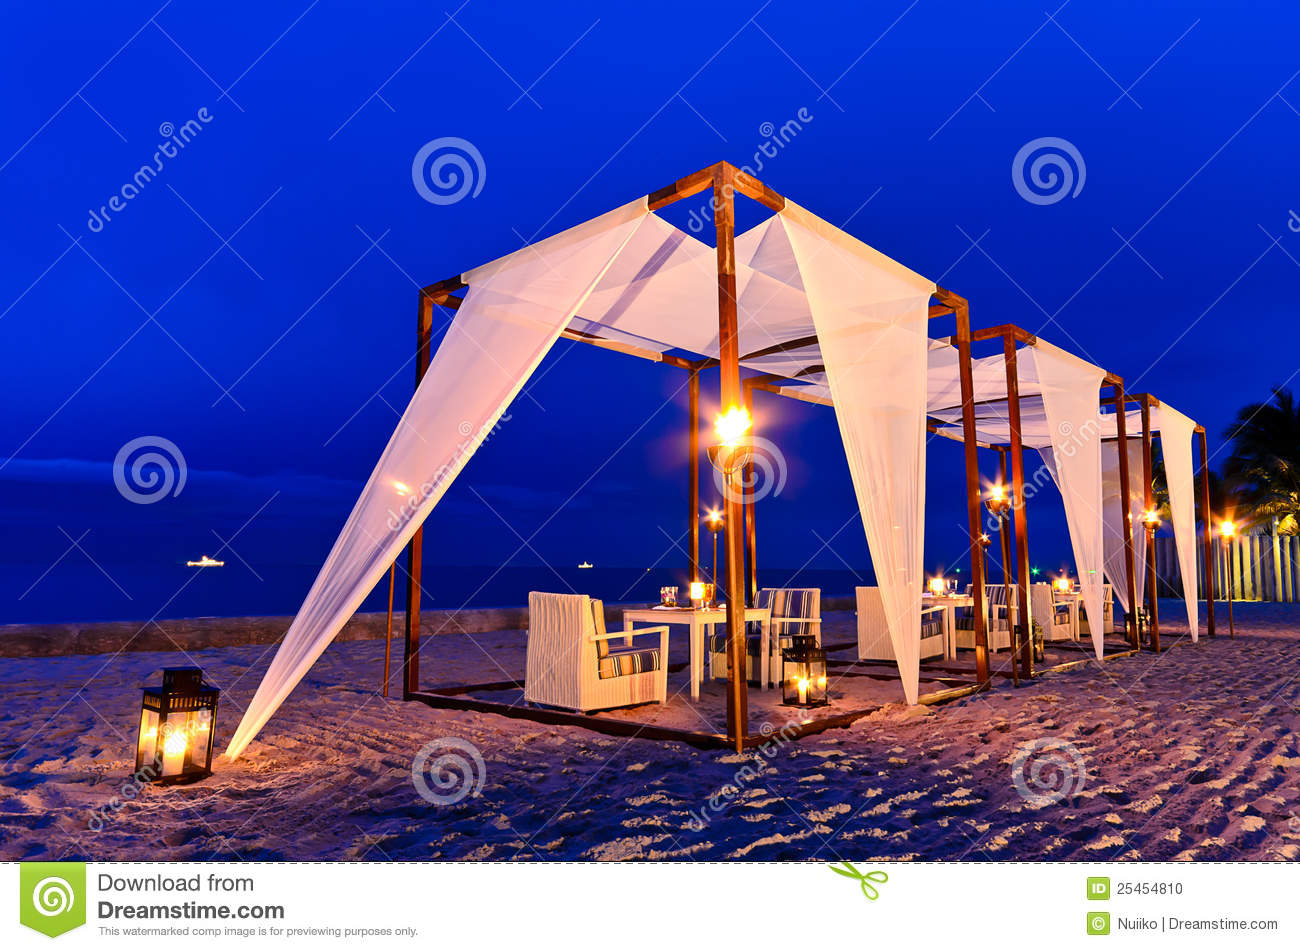 romantic dinner set up on the beach stock photo - image: 61303518